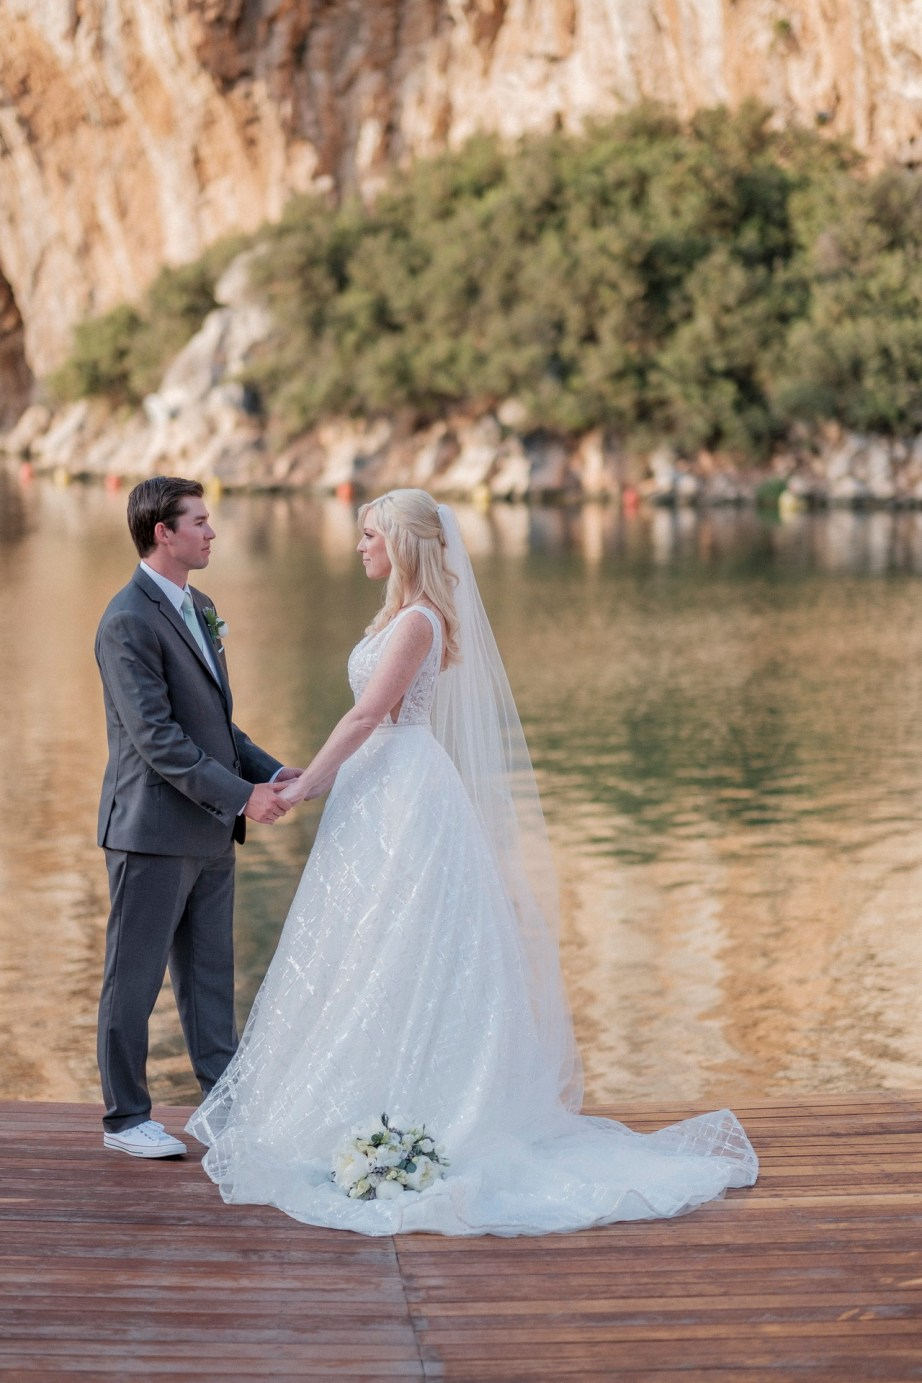 Lake_vouliagmeni_greece_weddings_nicole_caldwell_64